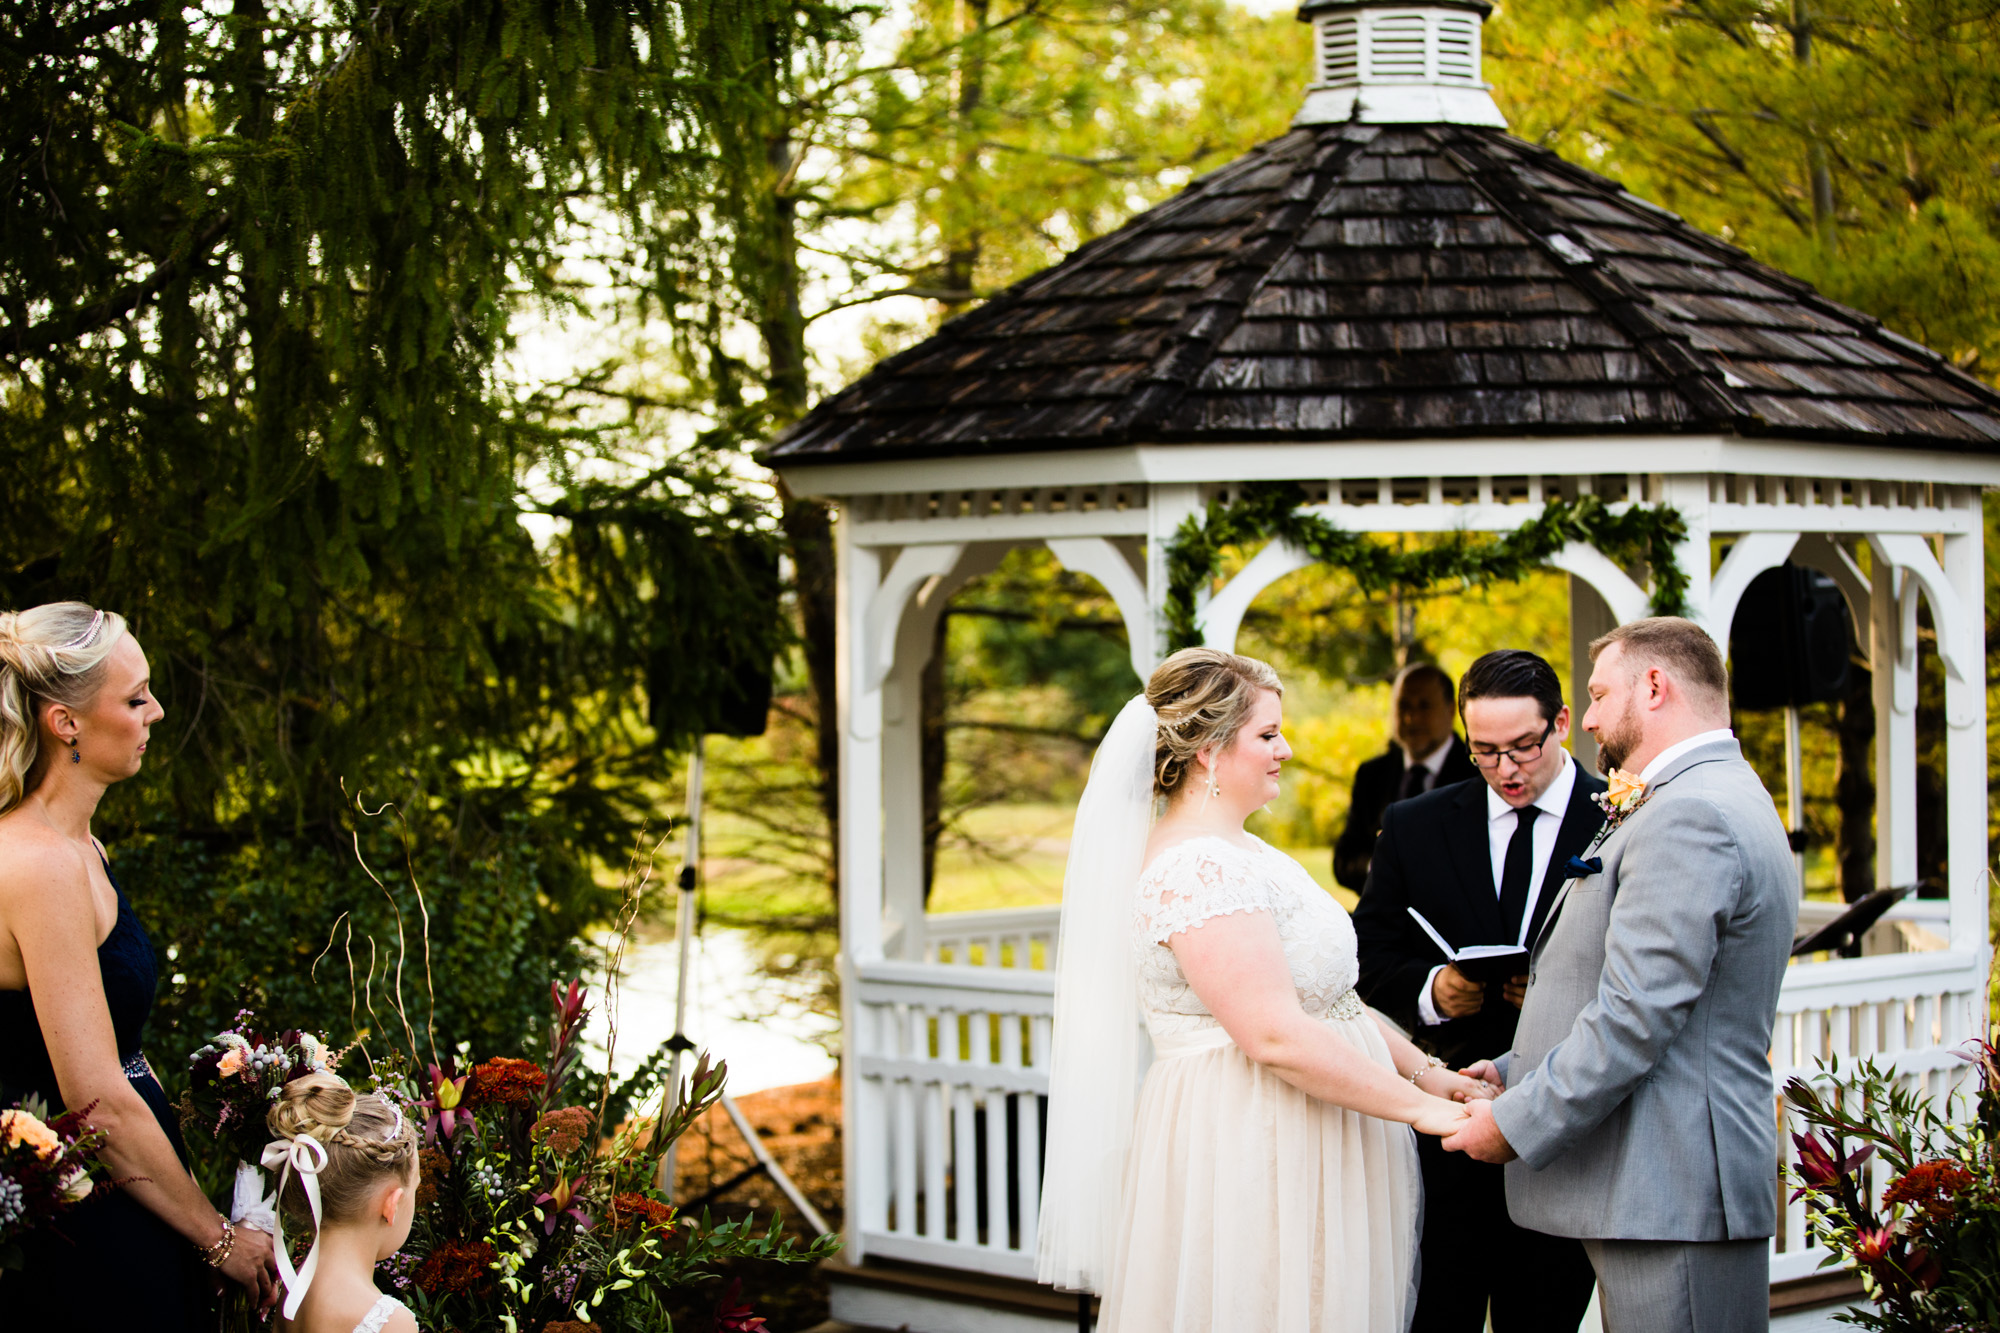 LOVESTRUCK PICTURES NORMANDY FARMS WEDDING - 063.jpg